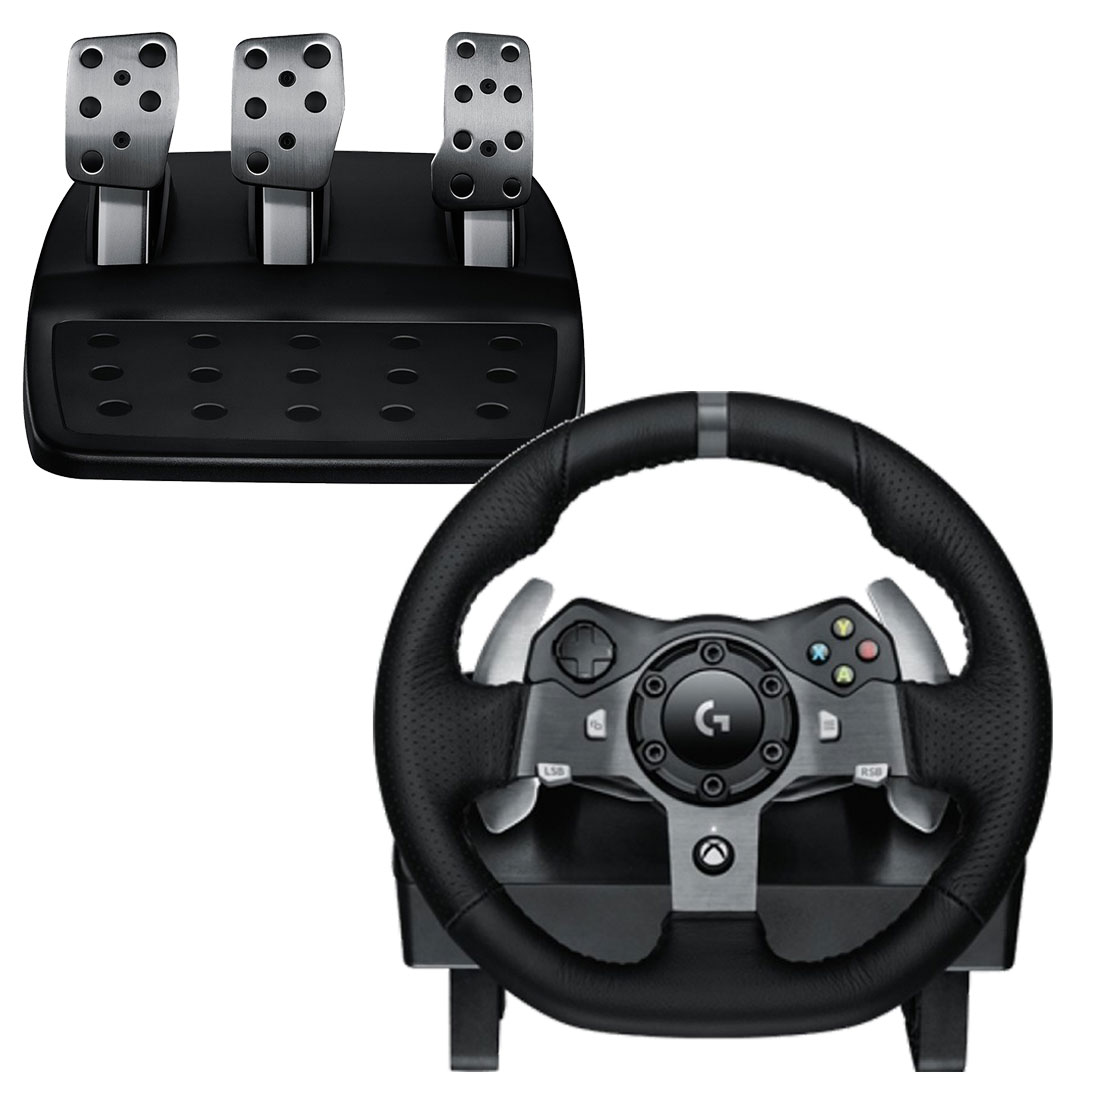 G920 – LOGITECH for simulator